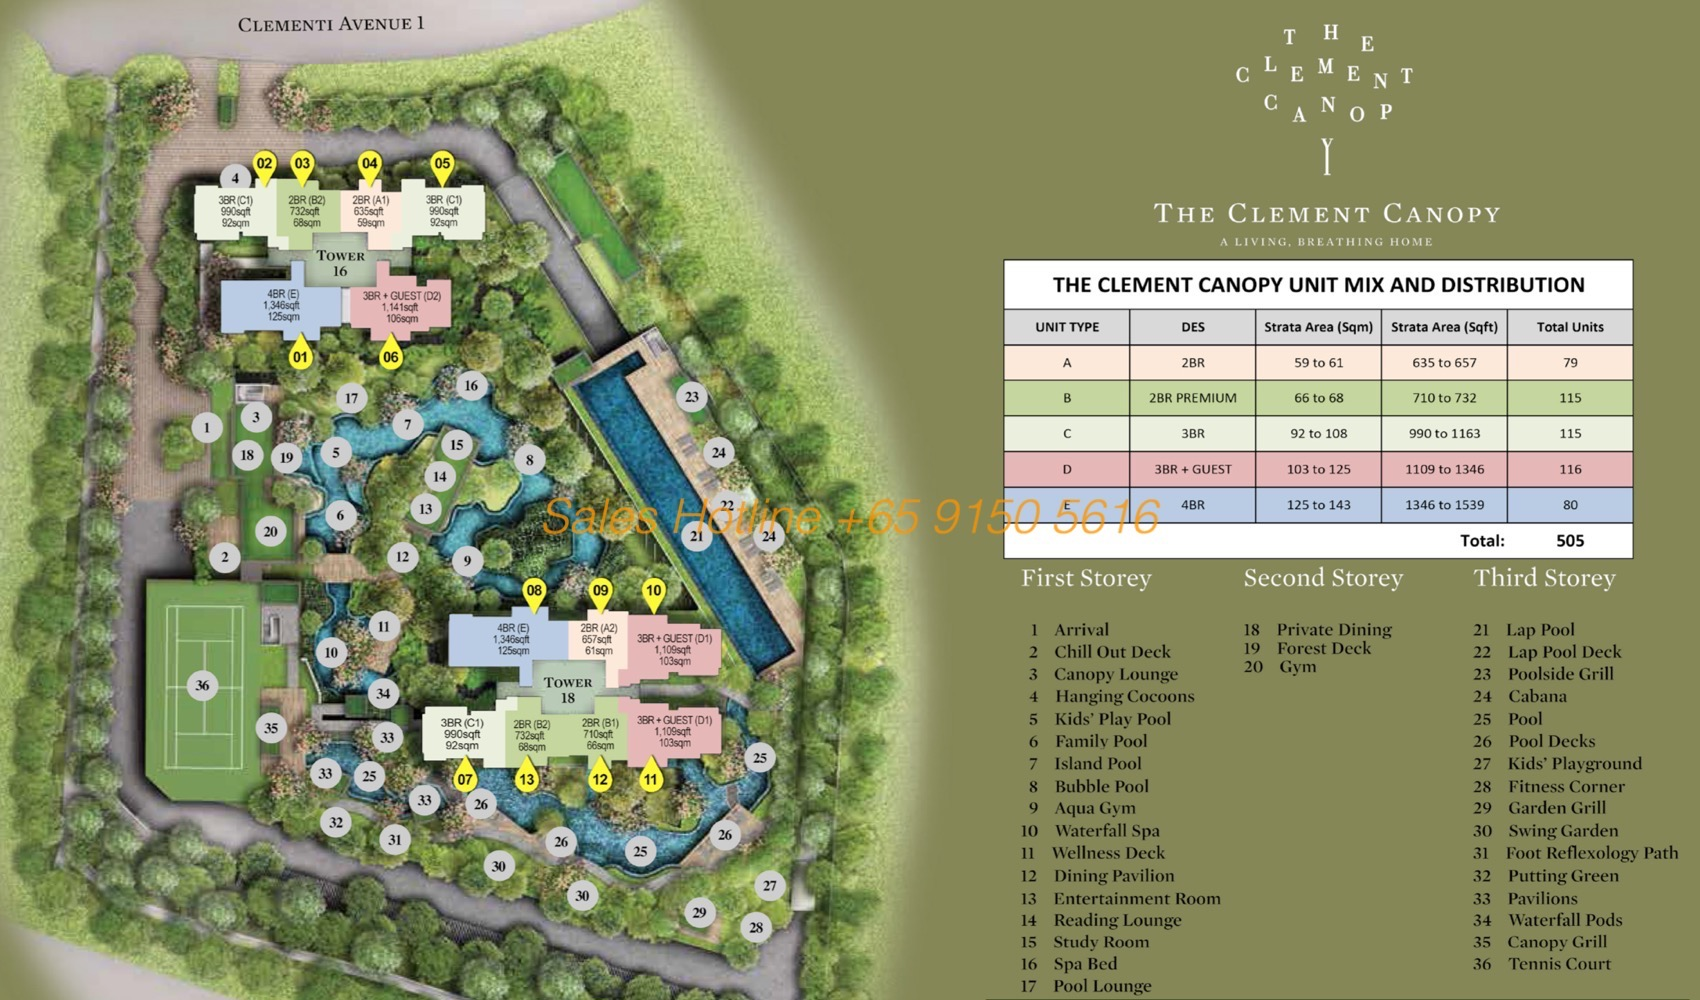 The Clement Canopy - Siteplan